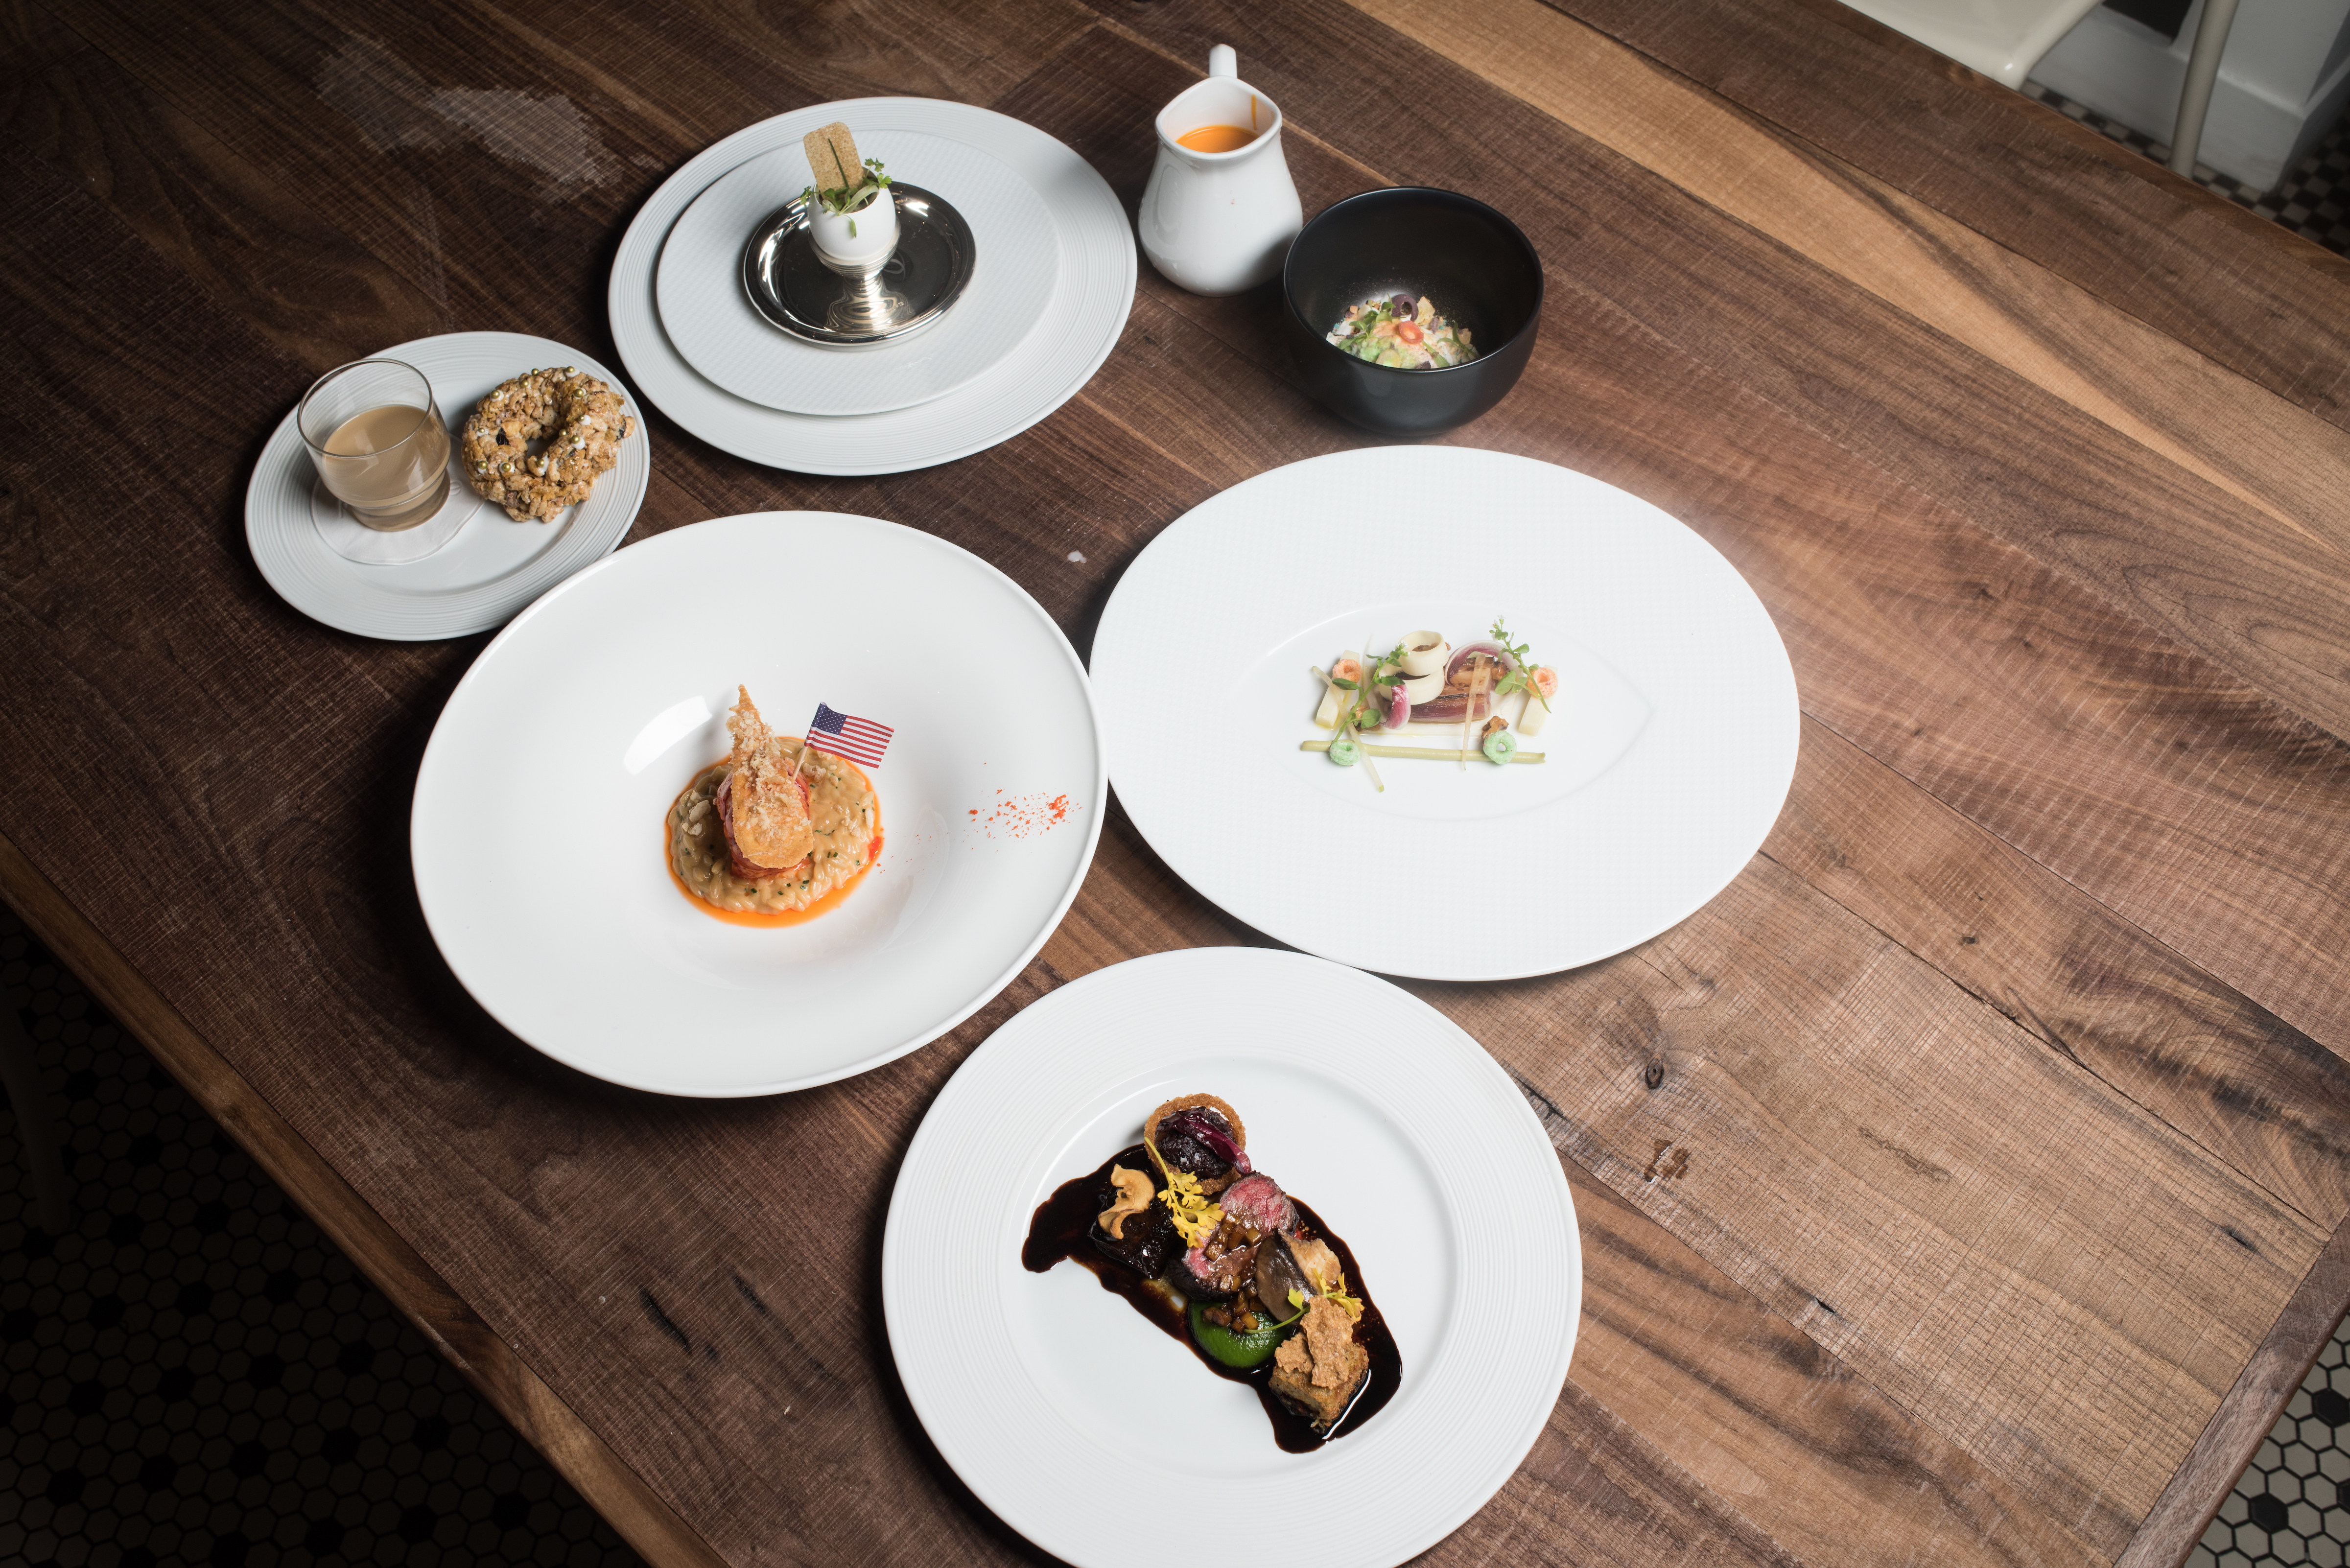 Kellogg created a six-course cereal tasting meal inspired by the signature dishes of professional chefs Thomas Keller and Daniel Boulud. The meal was featured at the cereal maker's NYC restaurant location.